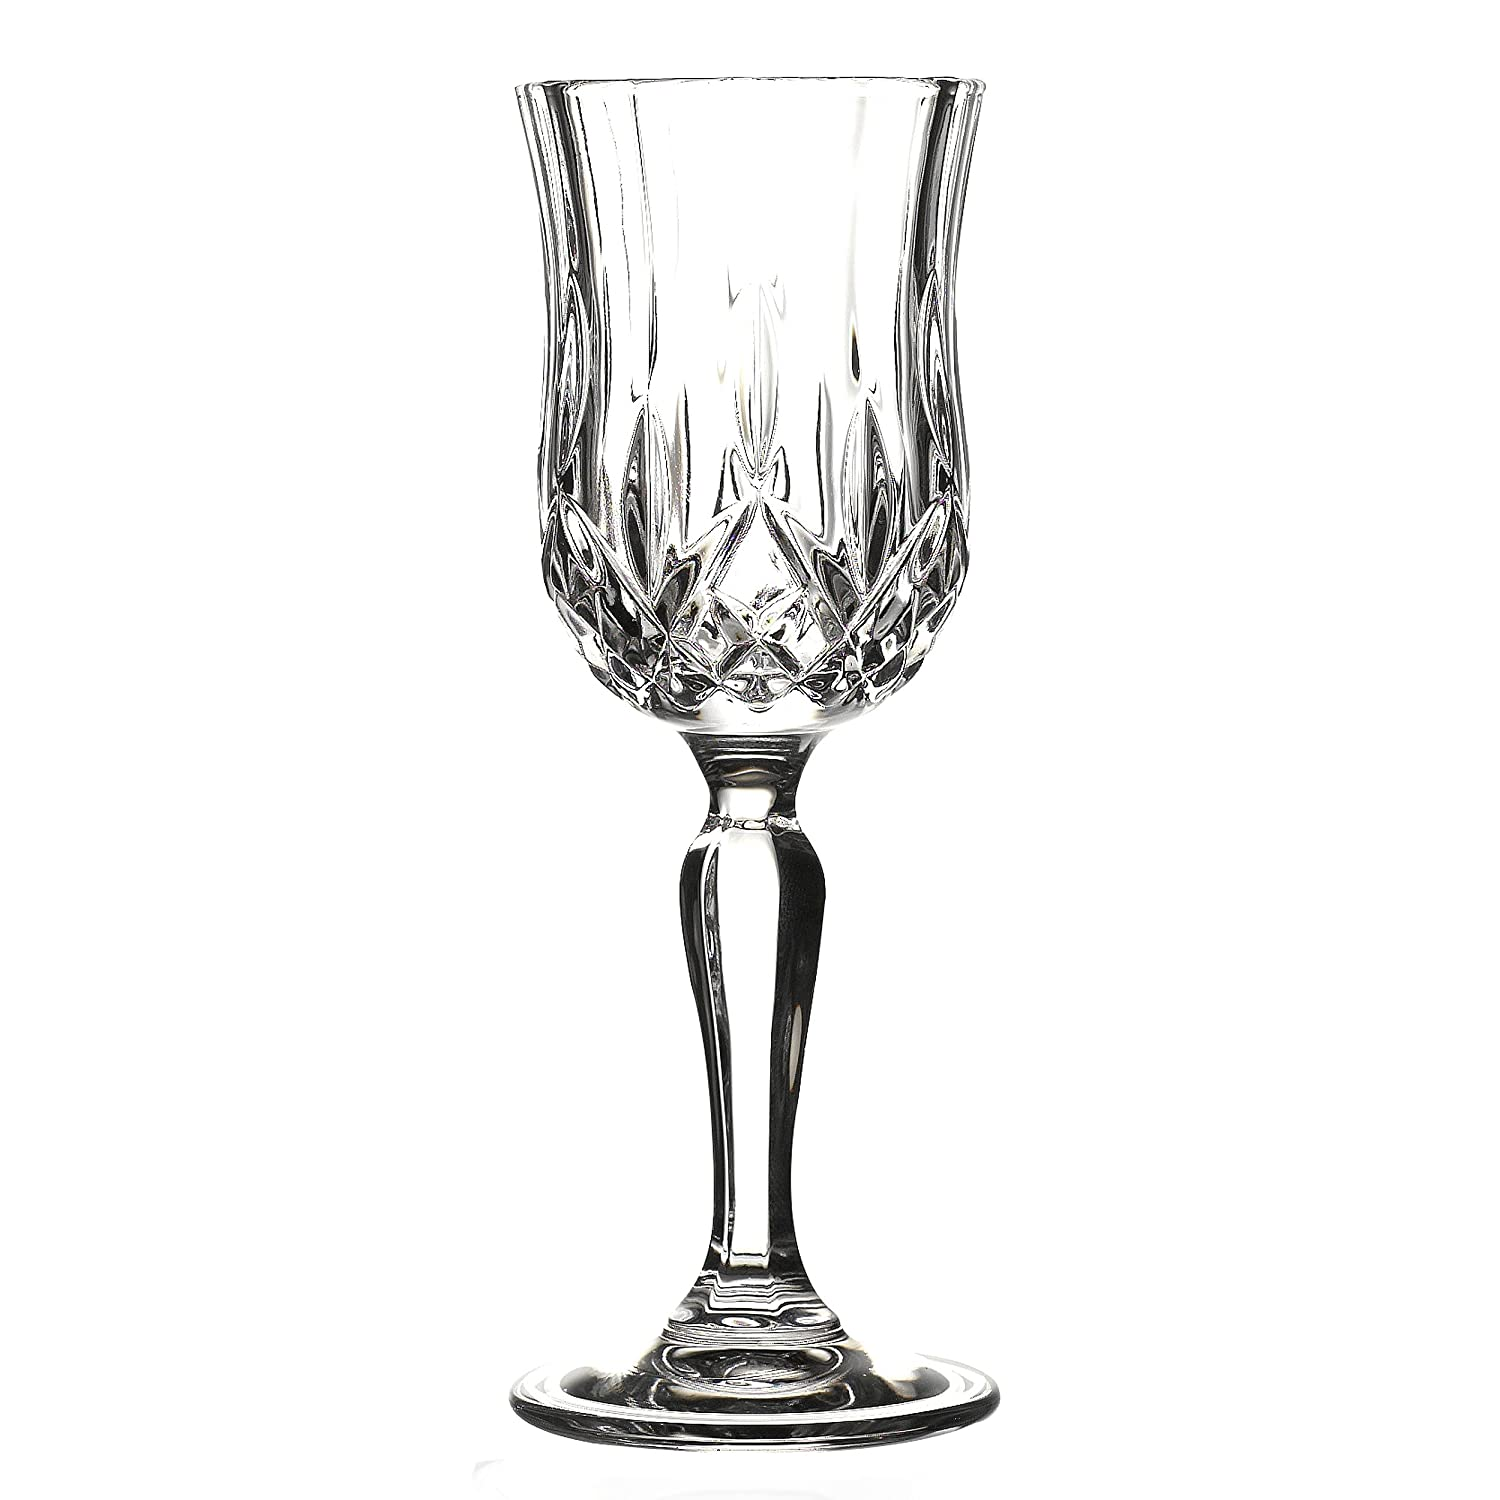 Lorren Home Trends Opera Liquor Glass Set (Set of 6), Clear 237990